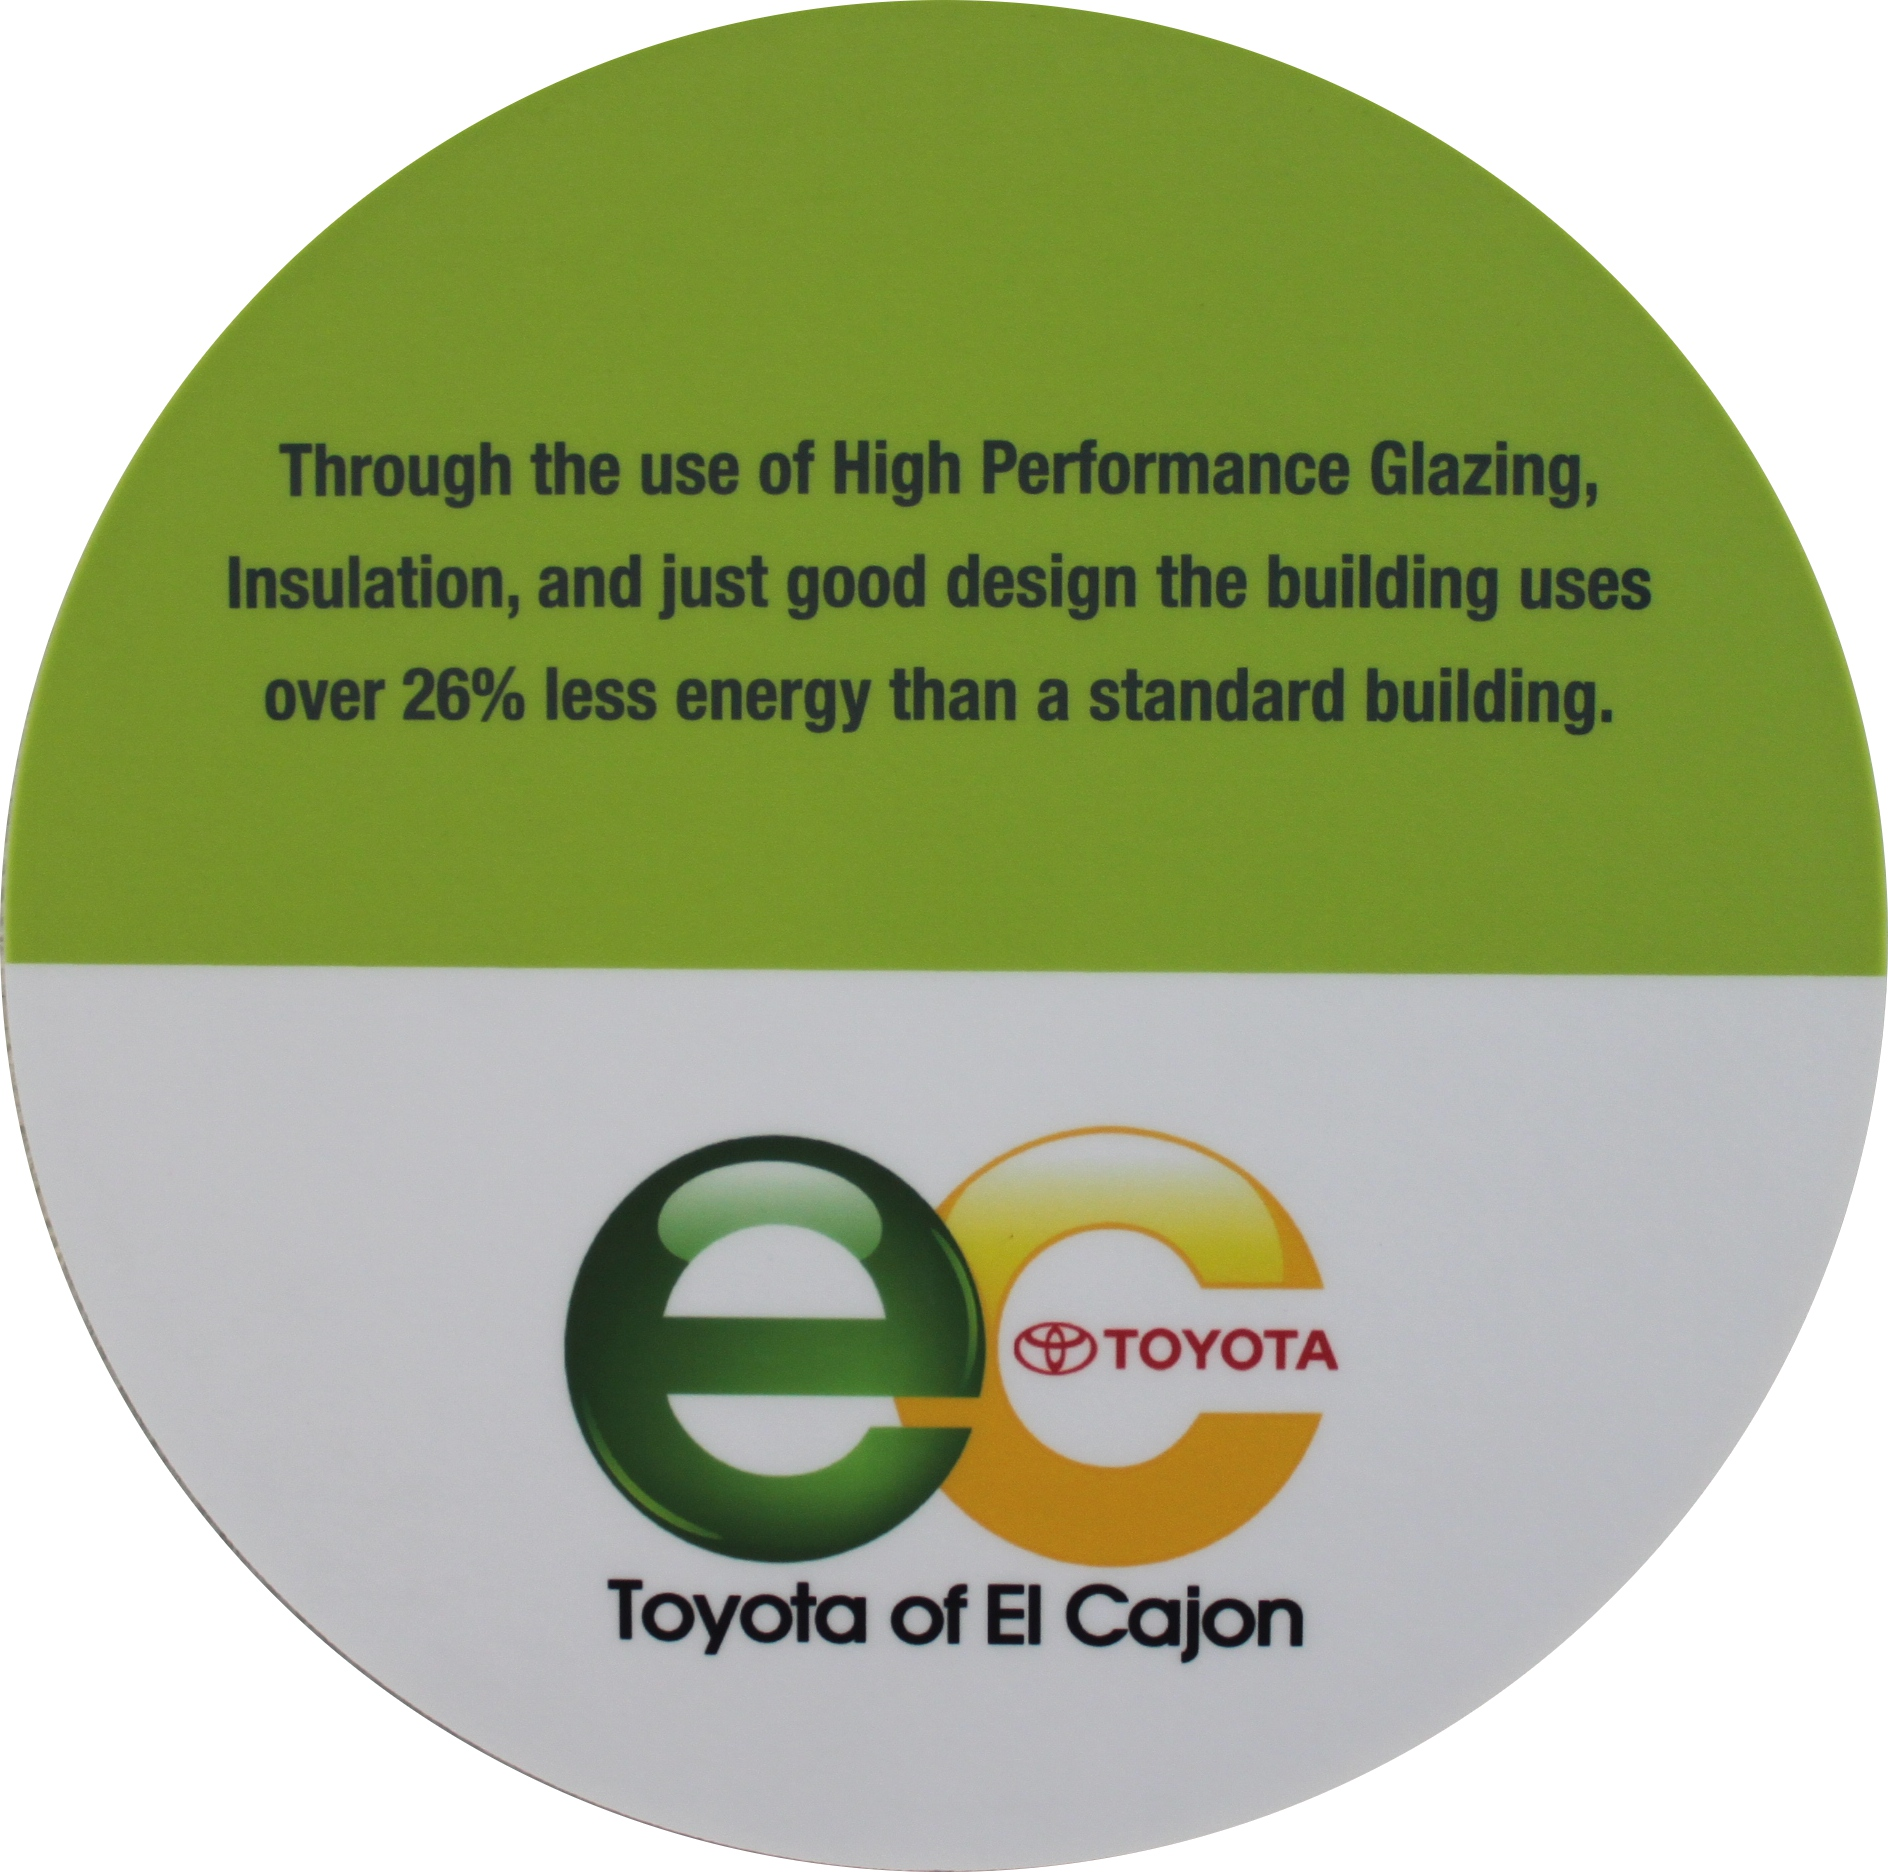 eco friendly facility fact 4 toyota of el cajon. Black Bedroom Furniture Sets. Home Design Ideas